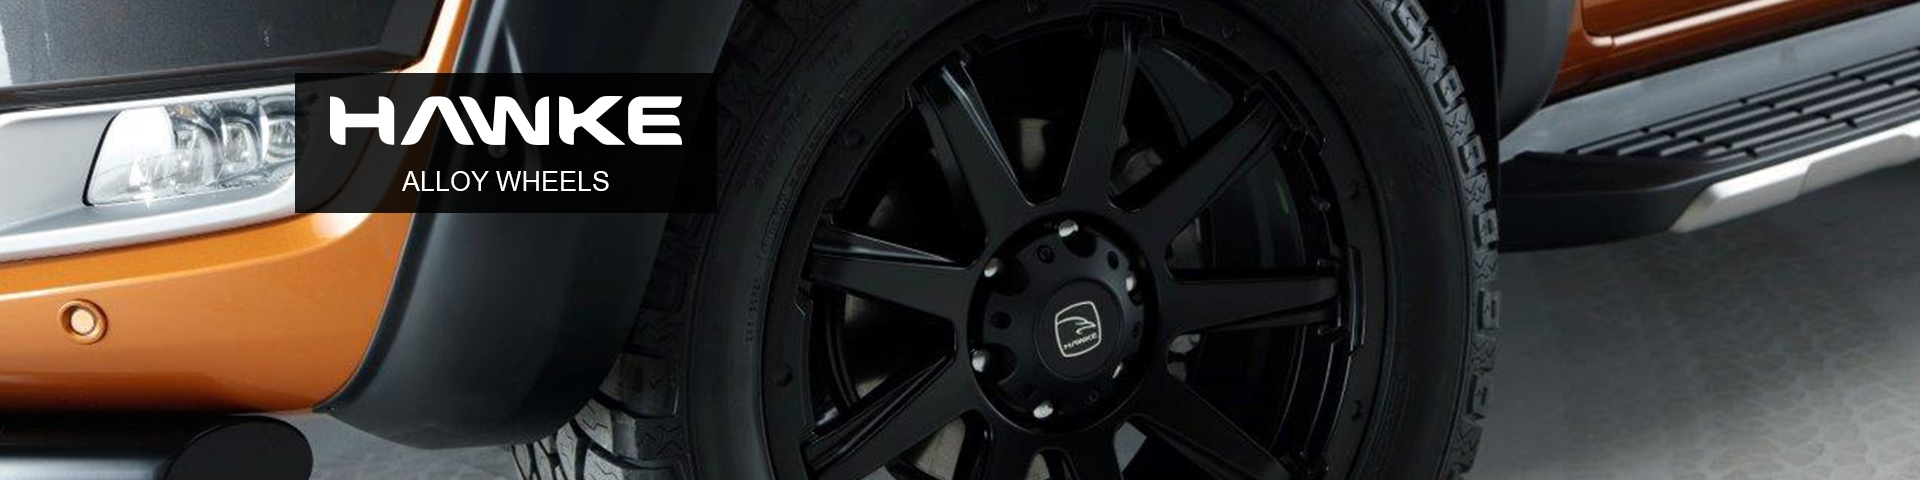 Hawke Alloy Wheels